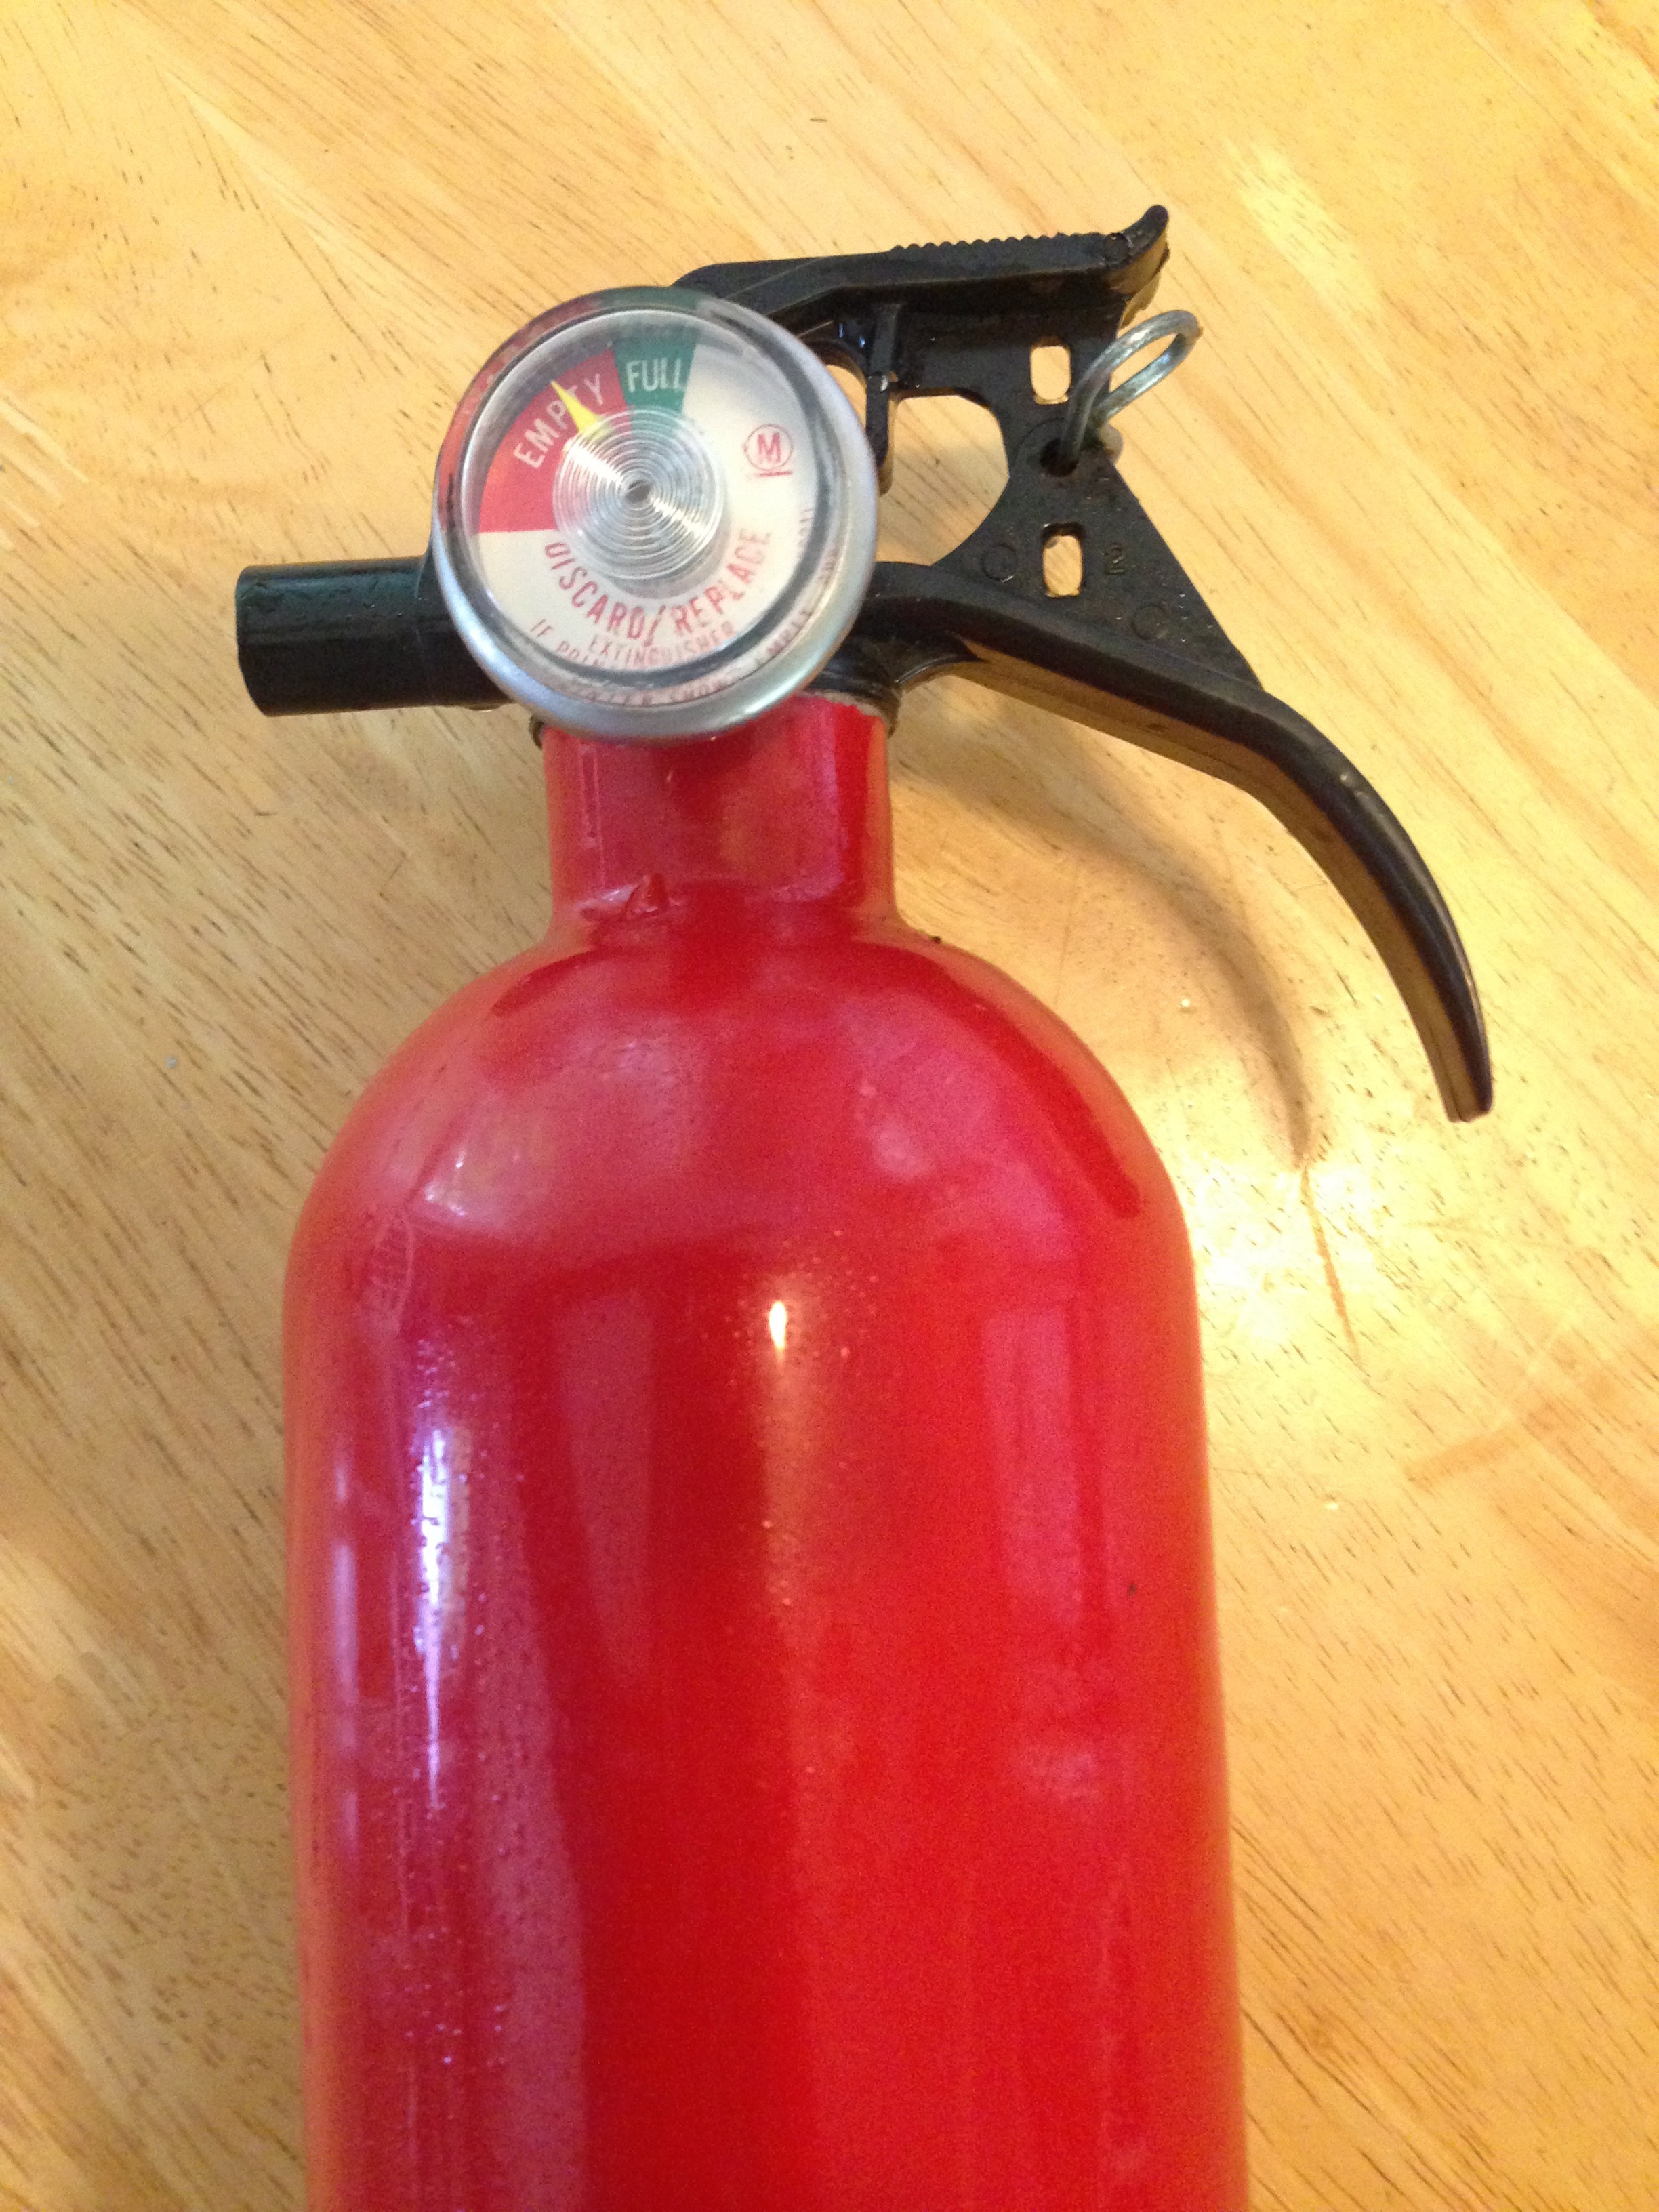 Ask The Mayor: Is it Illegal to Block Fire Extinguisher Access?